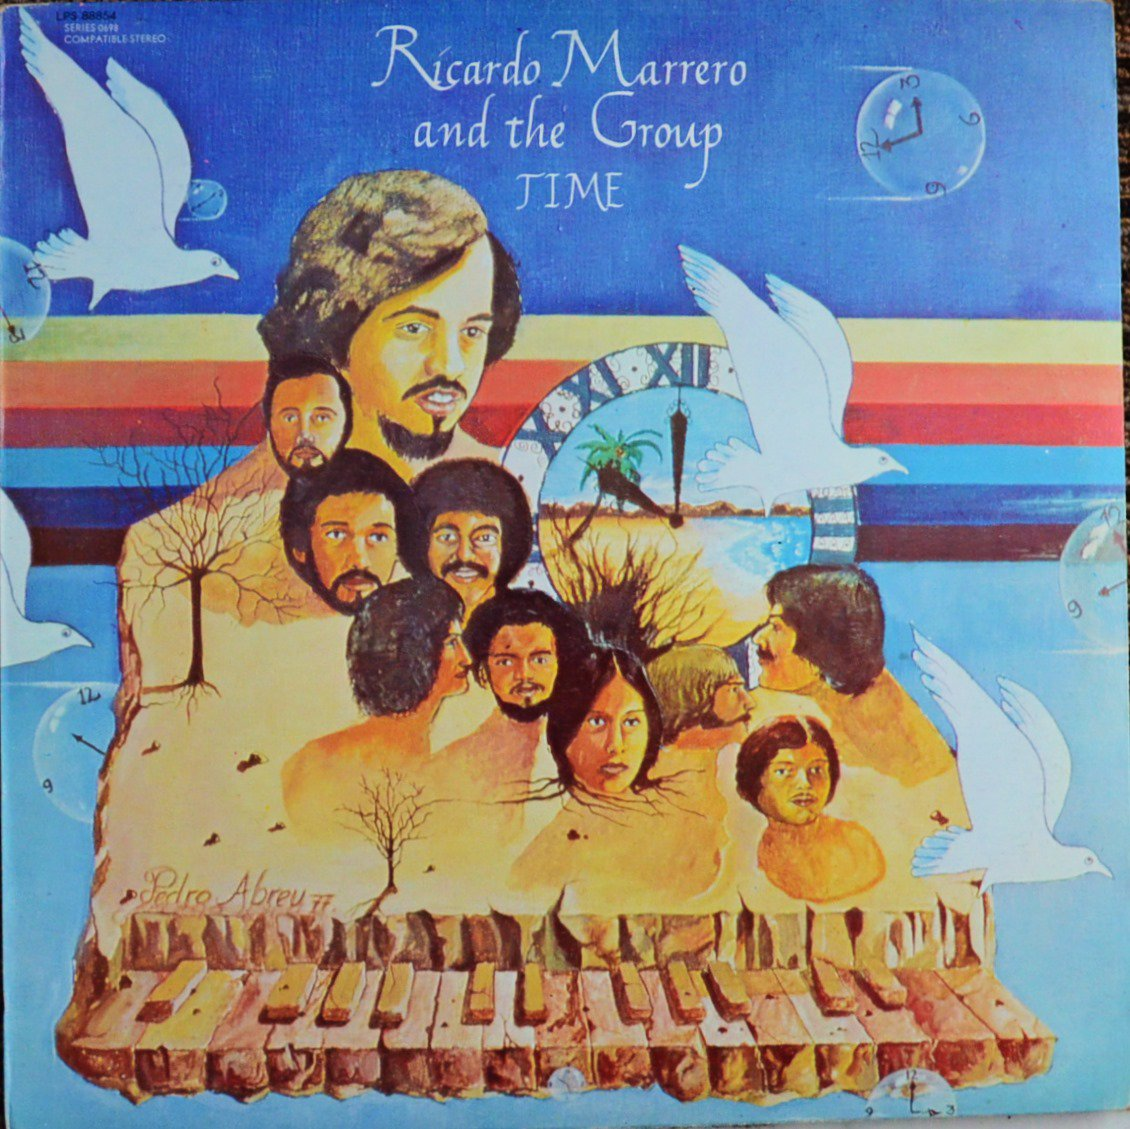 RICARDO MARRERO AND THE GROUP / TIME (LP)